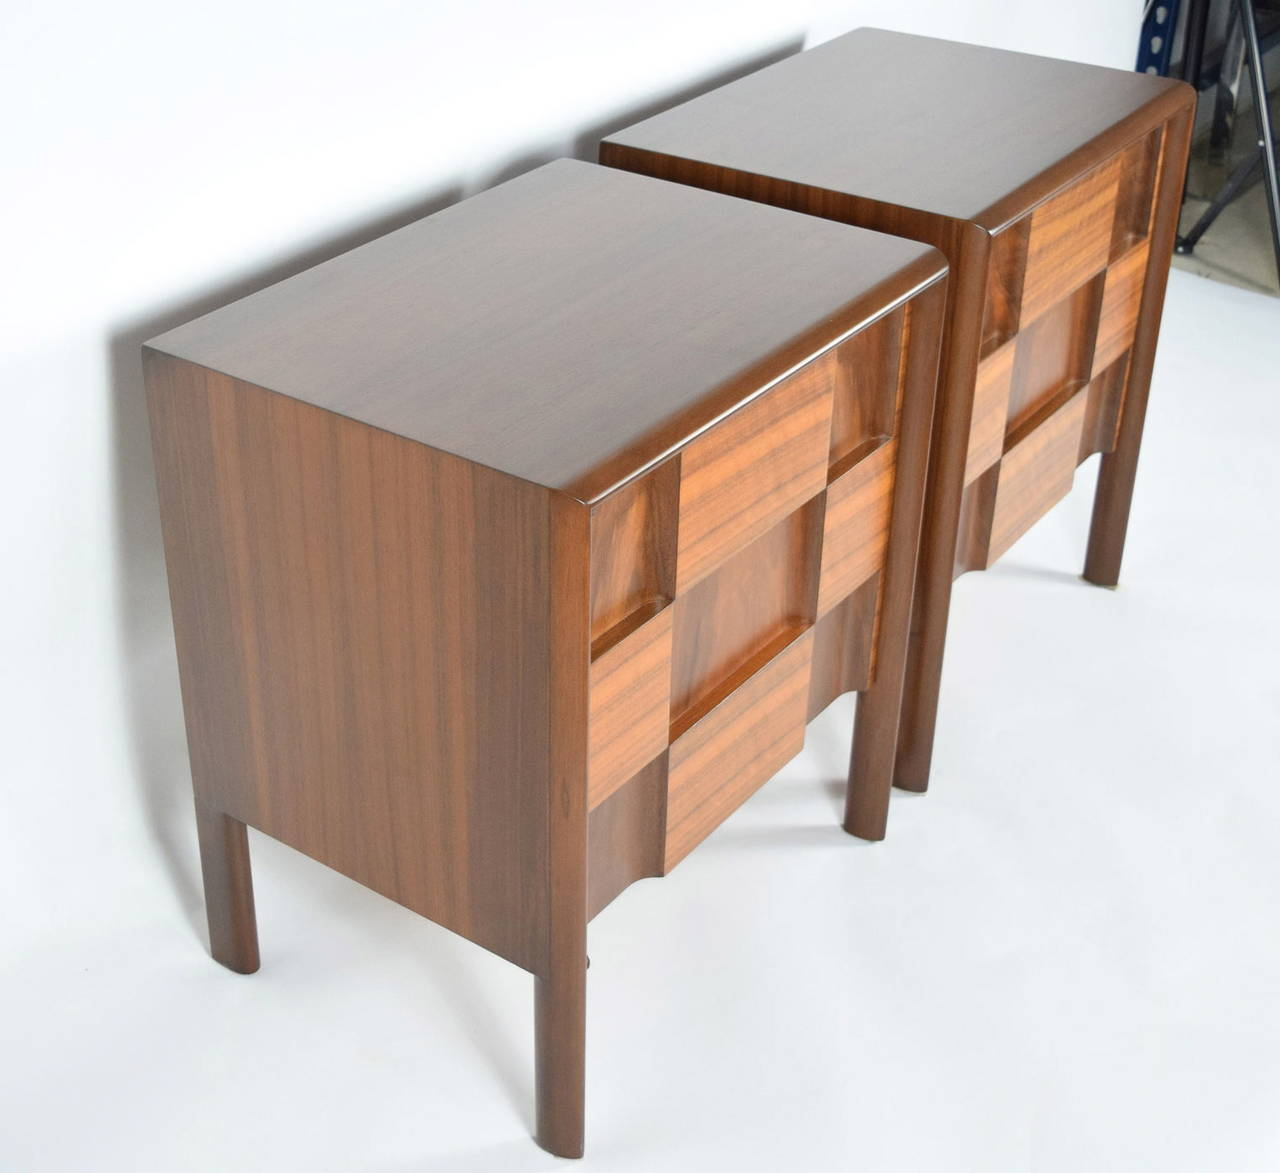 Mid-20th Century Edmond Spence Nightstands Made in Sweden For Sale